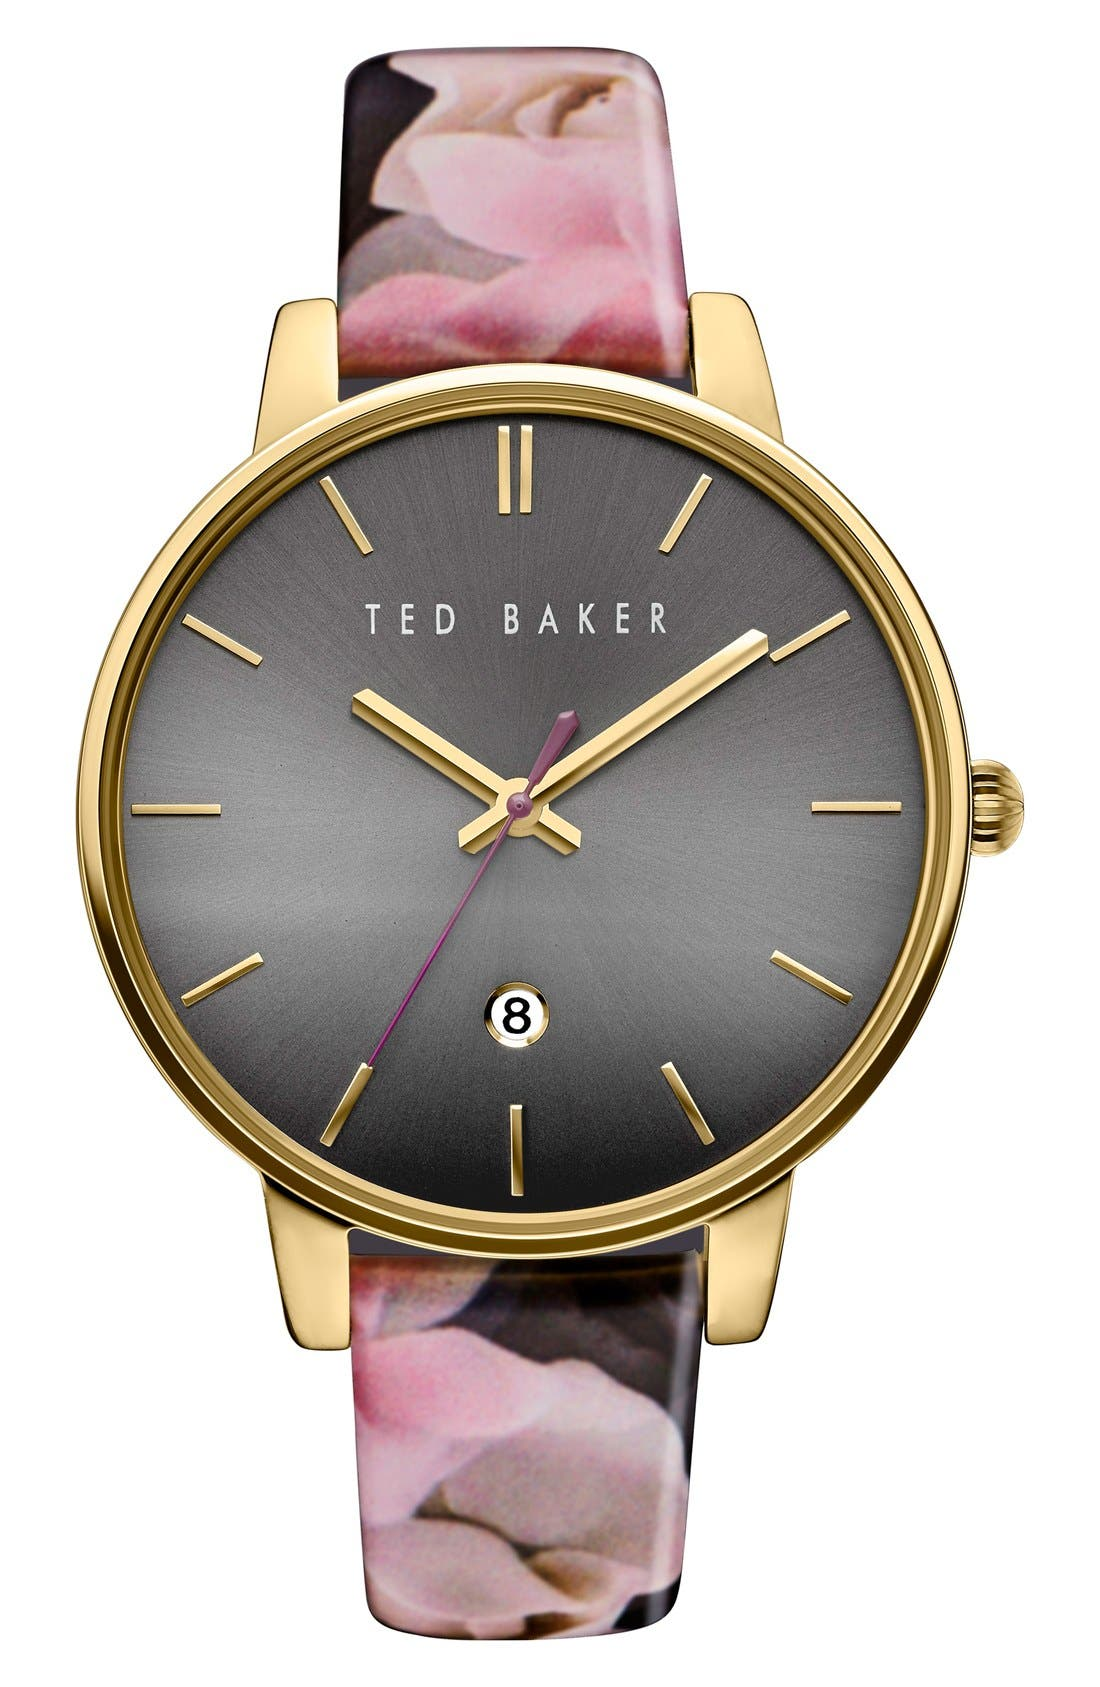 TED BAKER LONDON, Leather Strap Watch, 40mm, Main thumbnail 1, color, 001